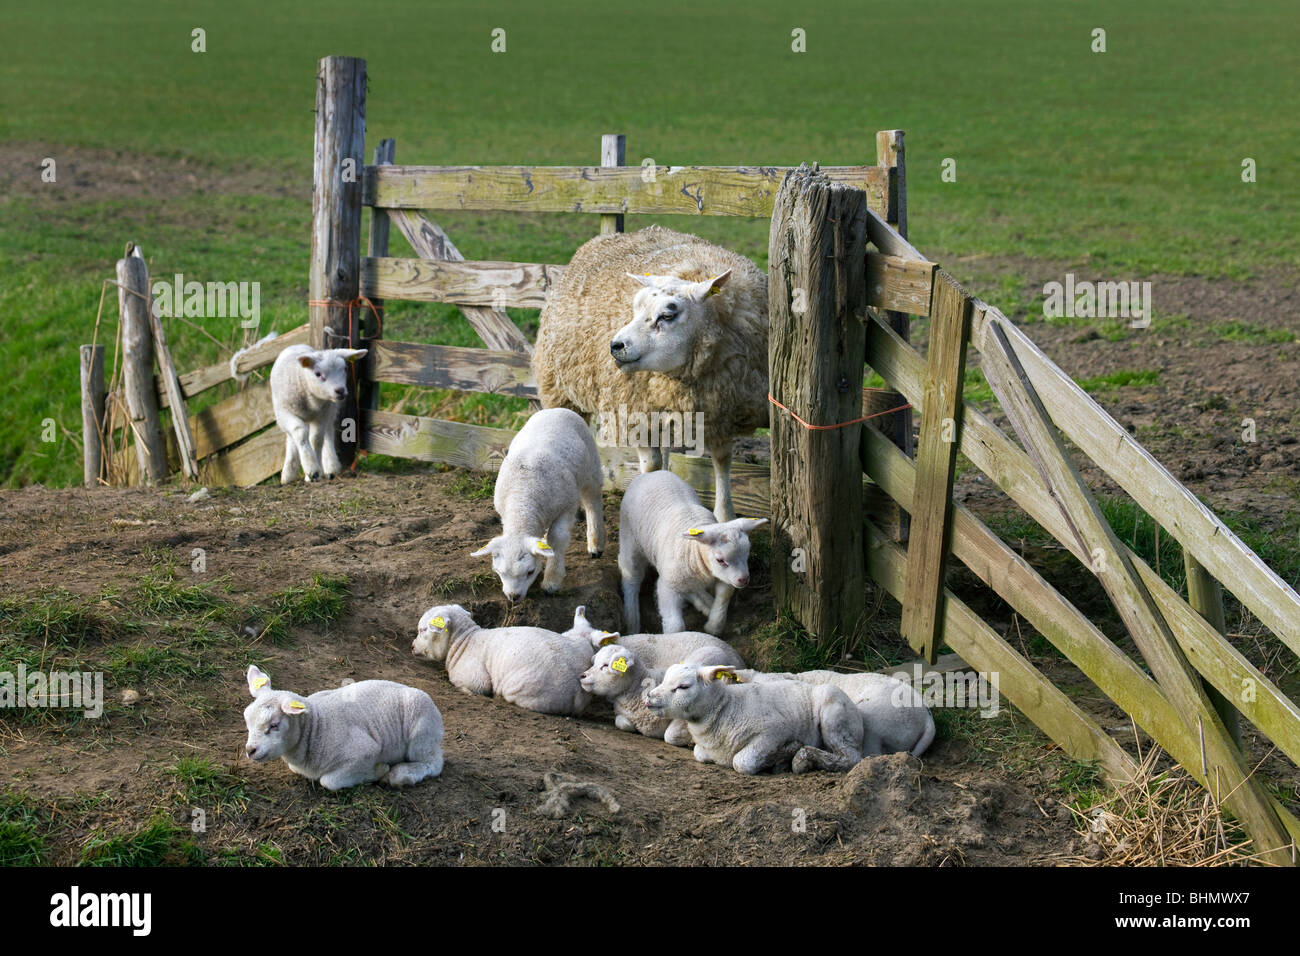 Domestic Texel sheep (Ovis aries) ewe with lambs in corral, The Netherlands - Stock Image